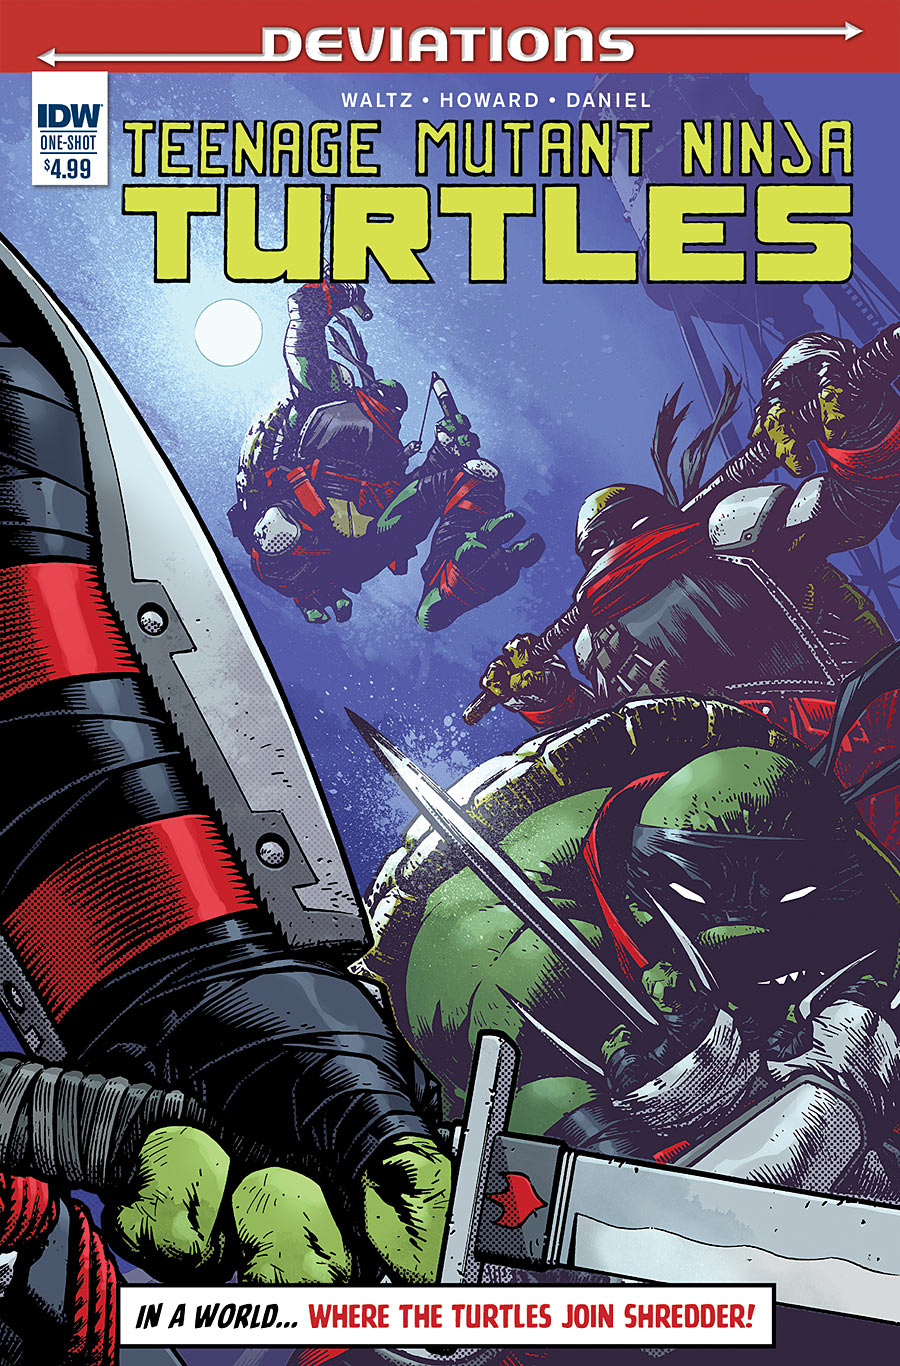 TEENAGE MUTANT NINJA TURTLES: DEVIATIONS